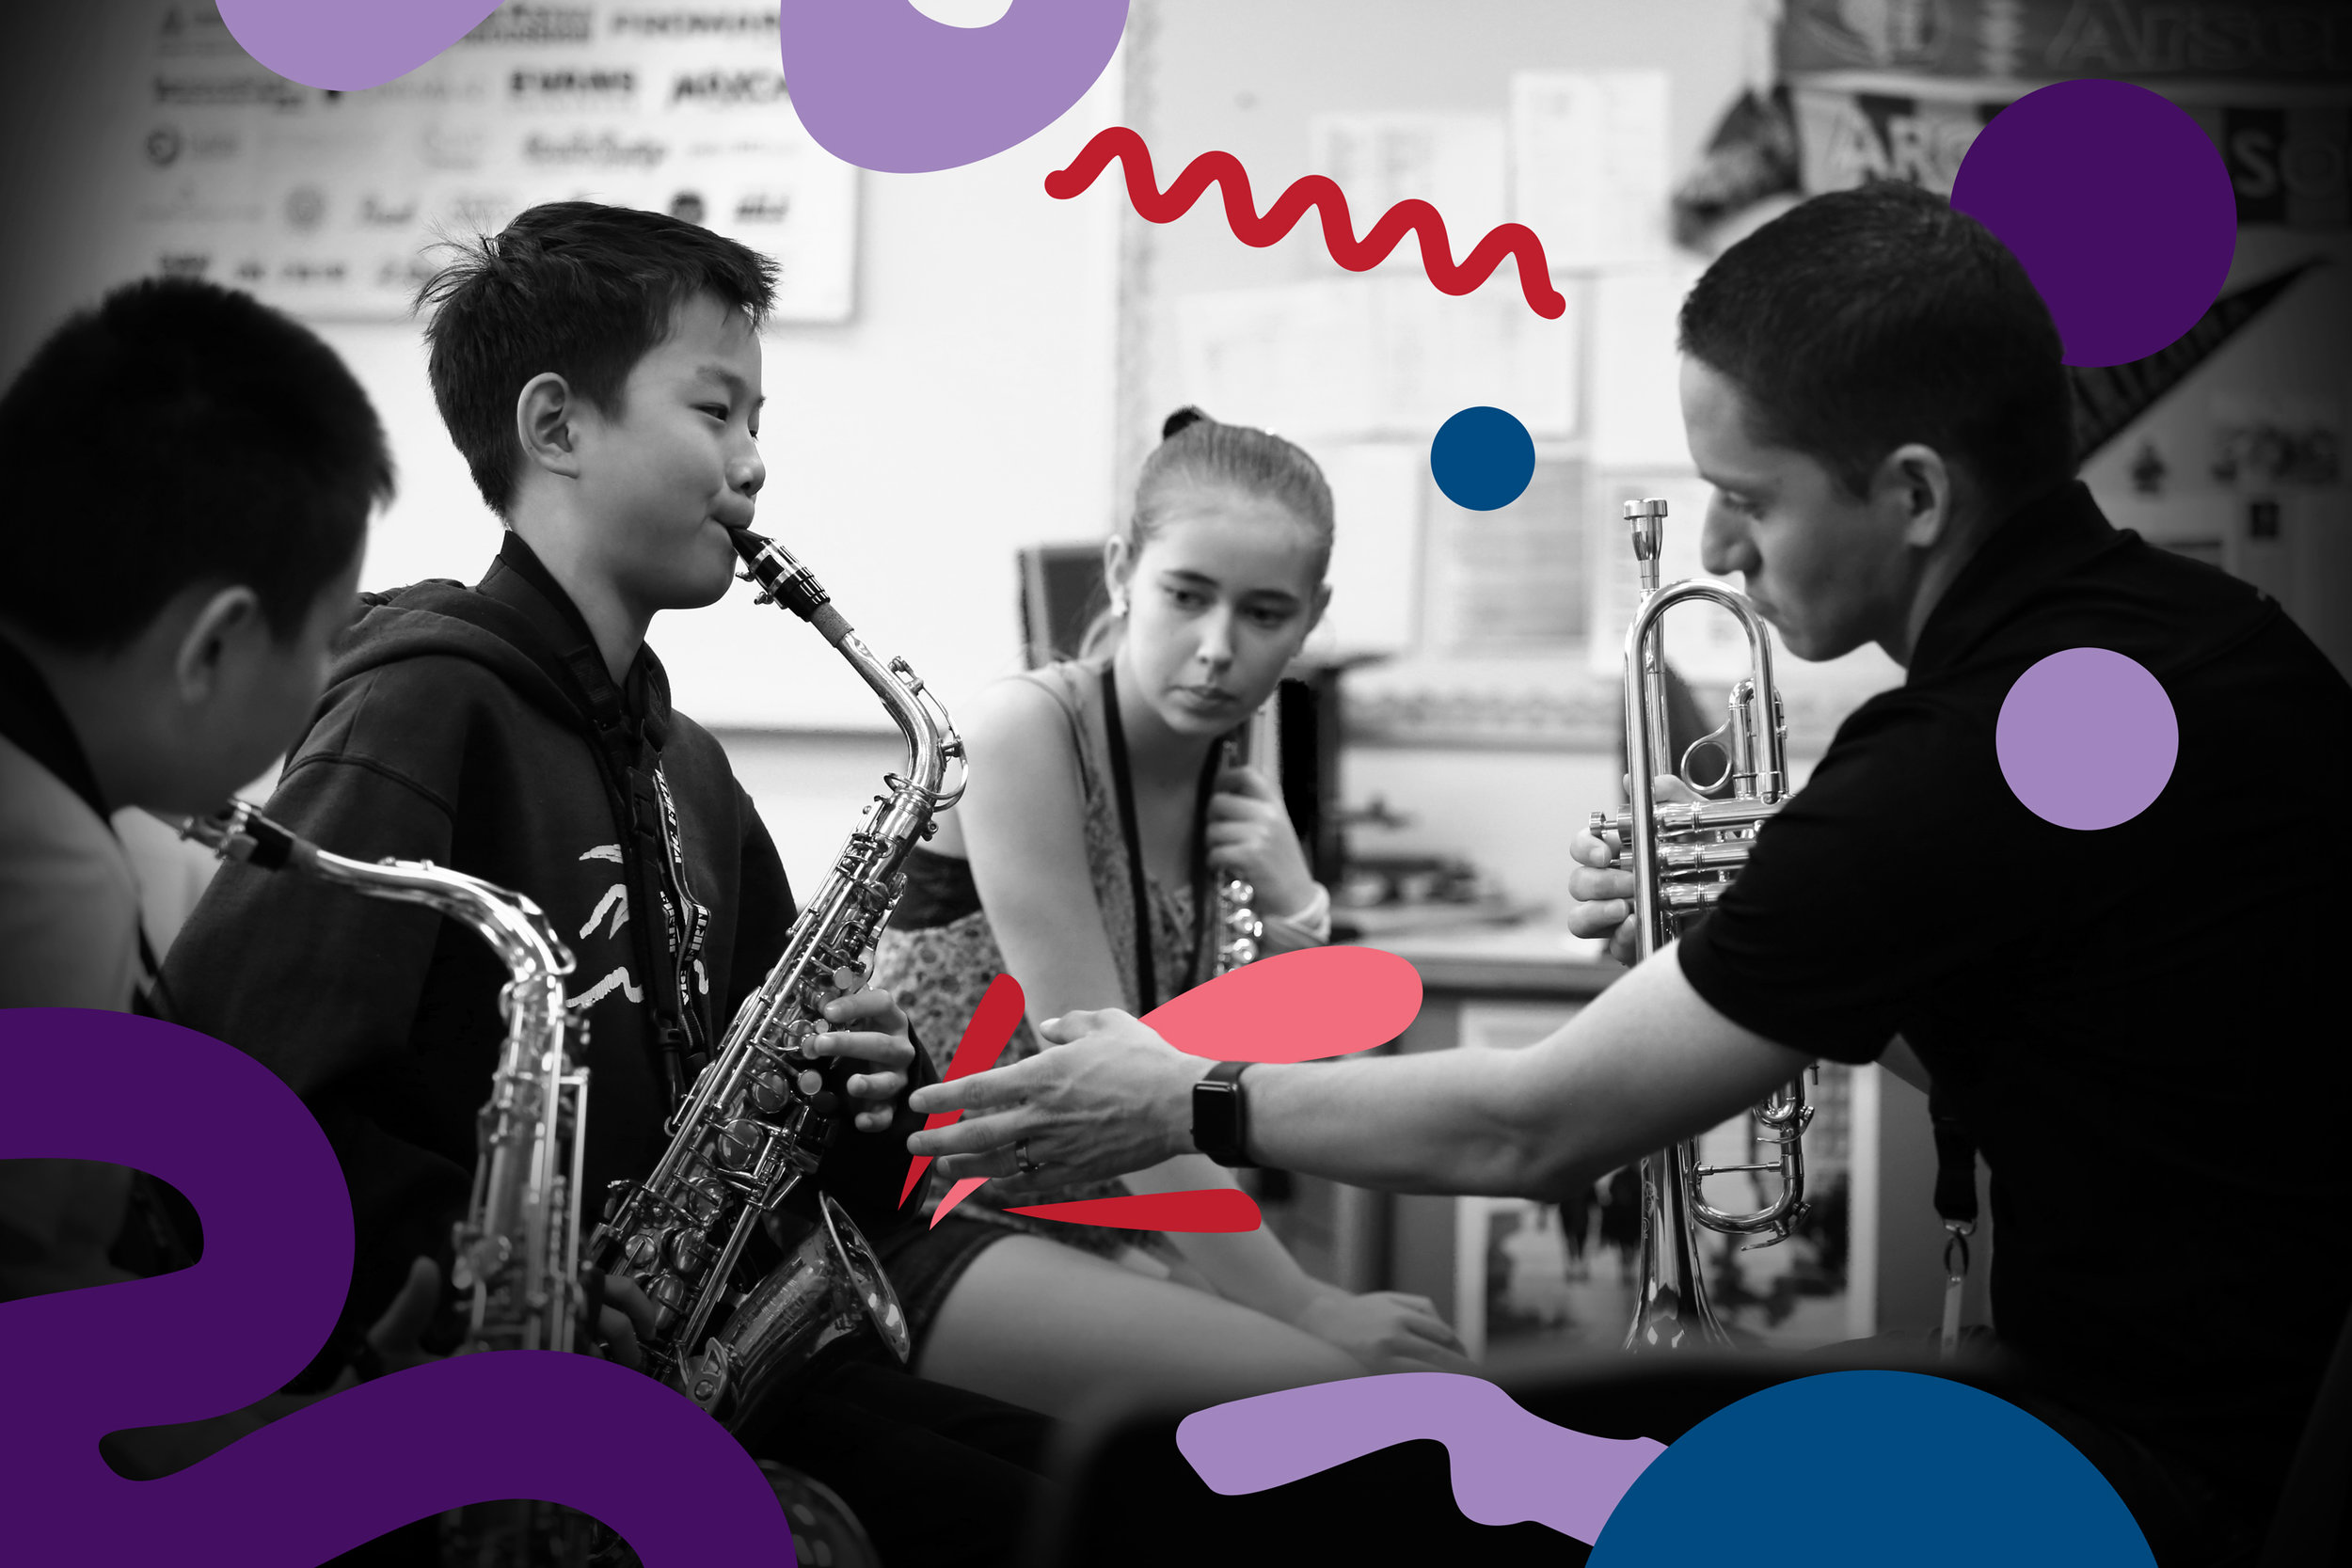 students - We know the power music learning has in developing the lives of our students, communities and our schools.We desire this symposium to be a catalyst for a renewed and energized community of student musicians and the music teachers who serve and lead them. Through transformation by way of instruction, reflection, and commitment to the greater good we can transform our local context.